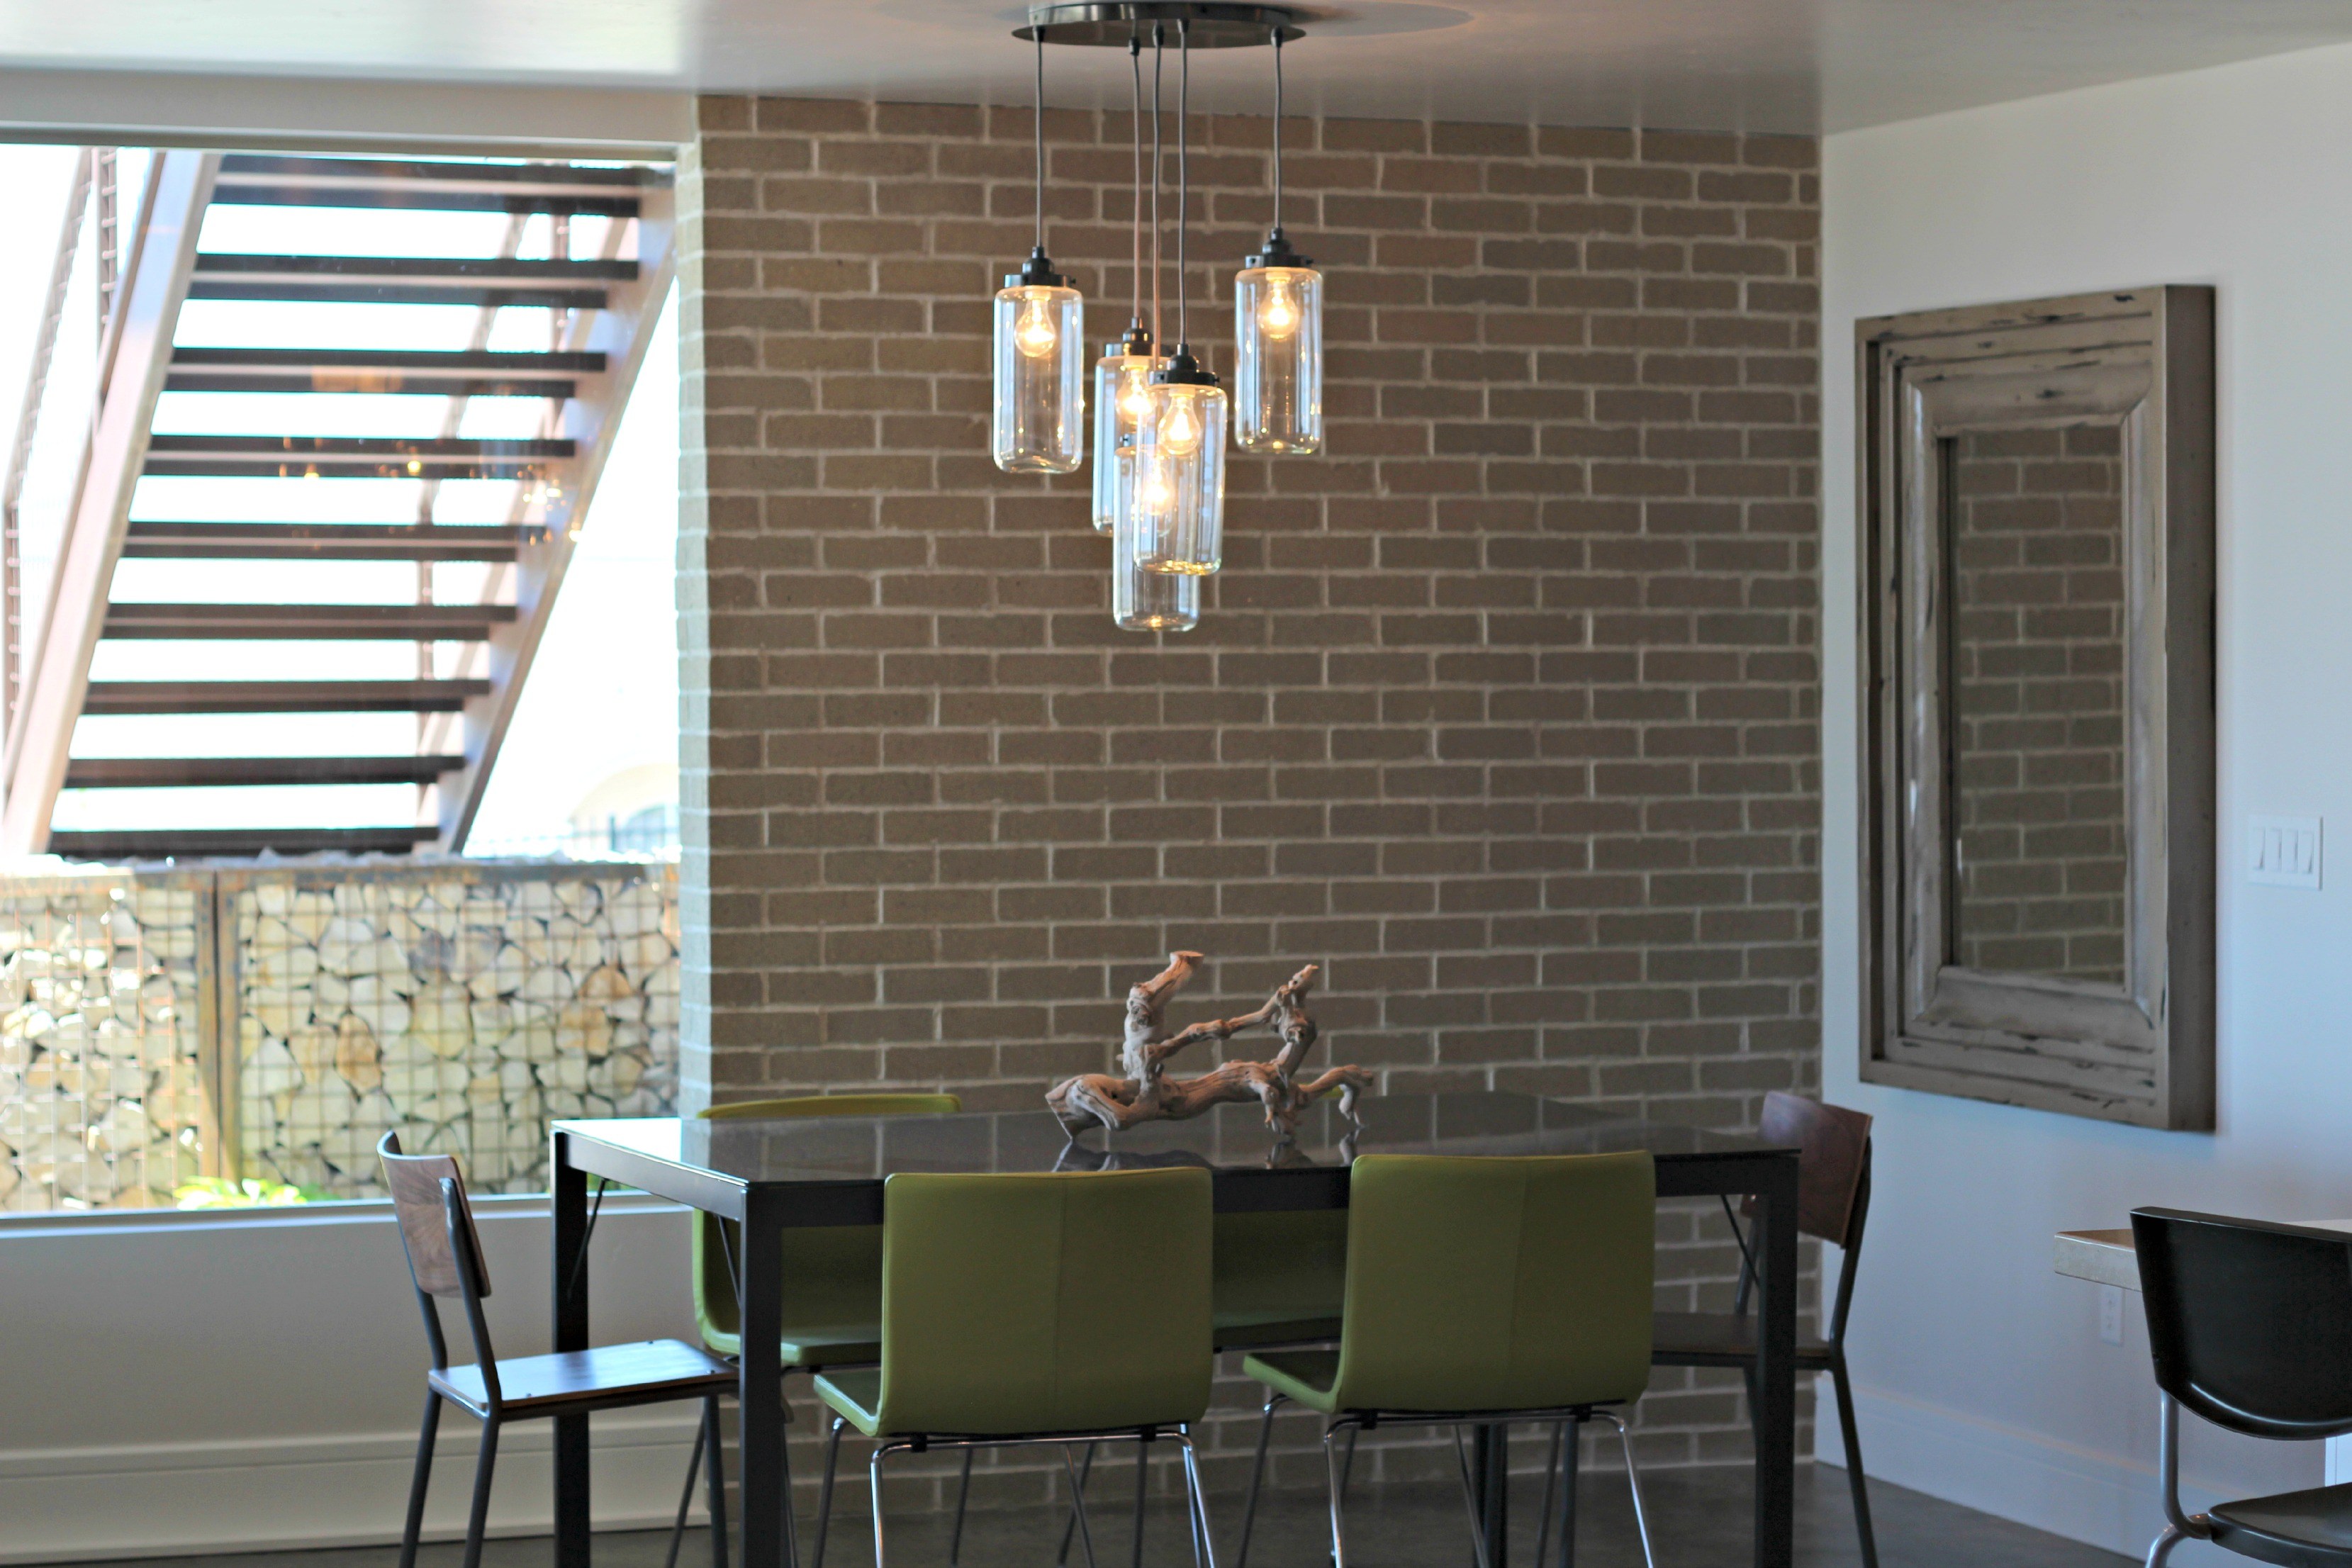 More paint colors from the uv parade of homes my favorite home - I Love The Brick Wall In The Dining Area And The Gabion Wall Just Outside The Window The Light Fixture Is One Of My Favorite Dining Room Lights